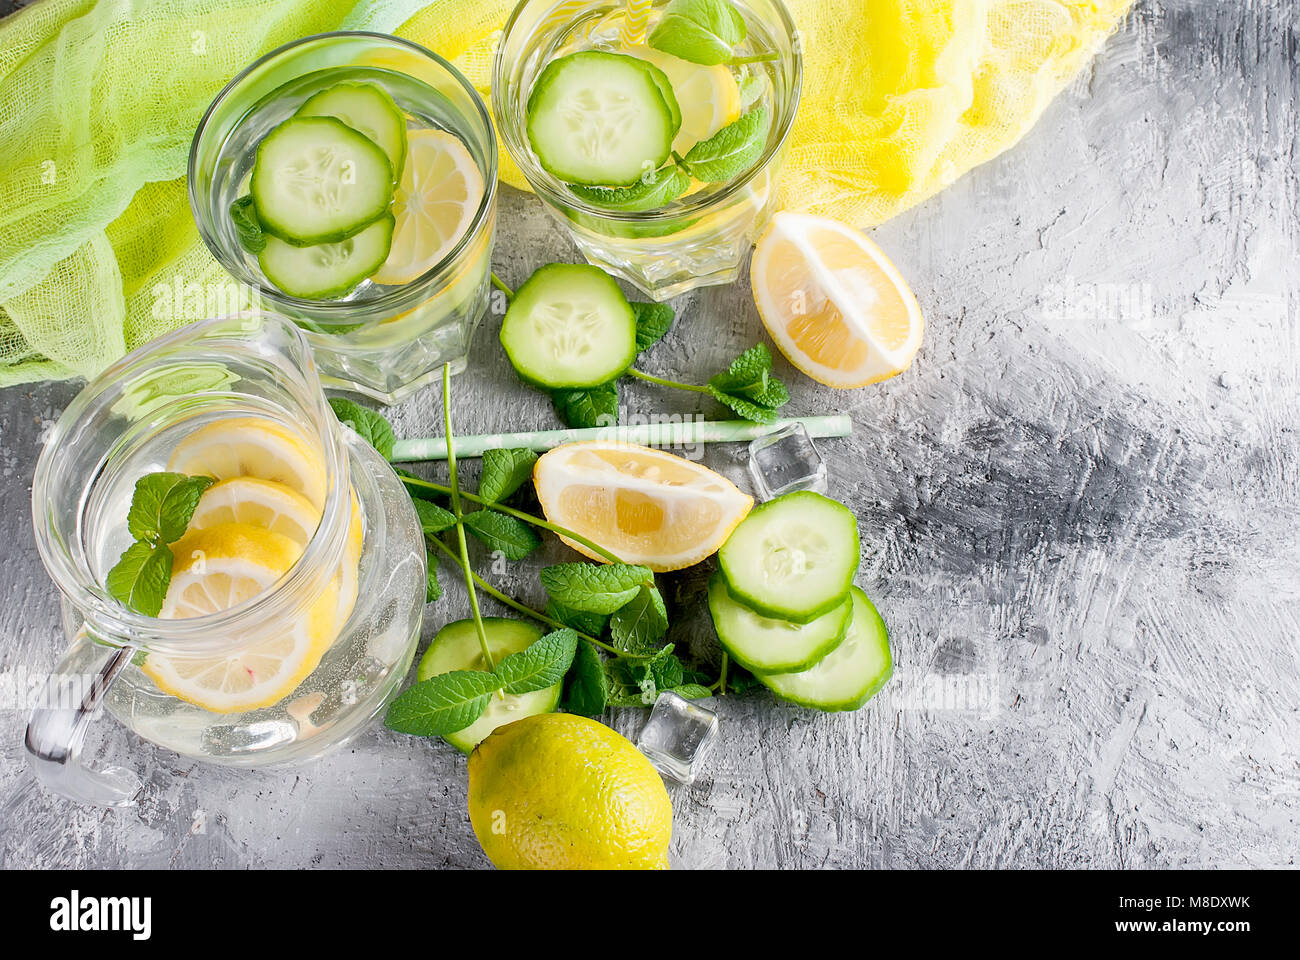 Citrus fruit and herbs infused sassi water for detox, healthy eating in  glasses and jug on over dark background - Stock Image